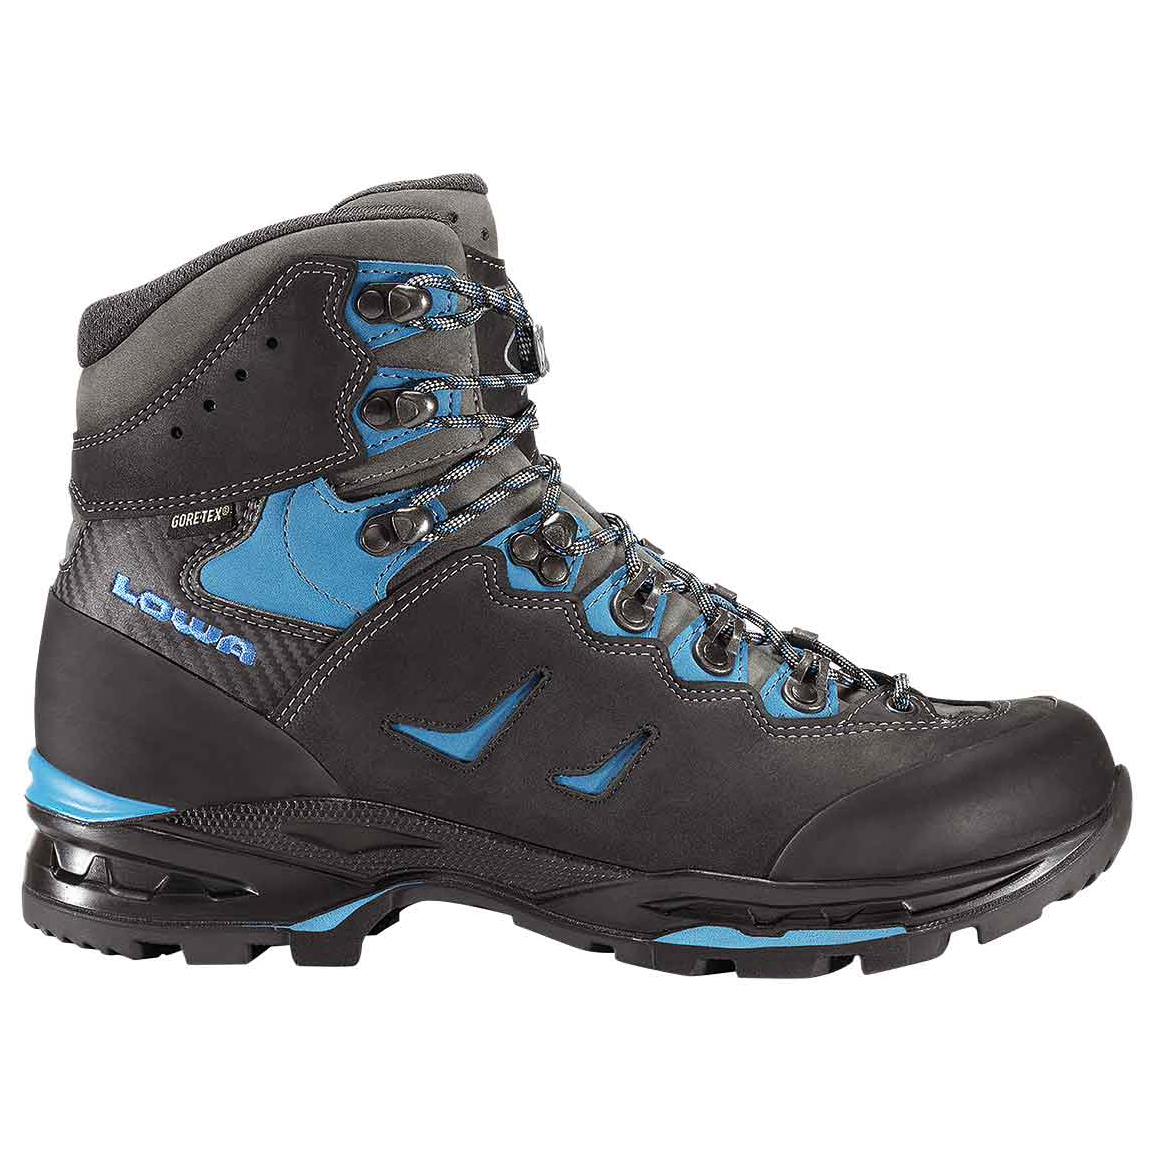 Lowa Camino GTX - Walking Boots Men's | Free UK Delivery